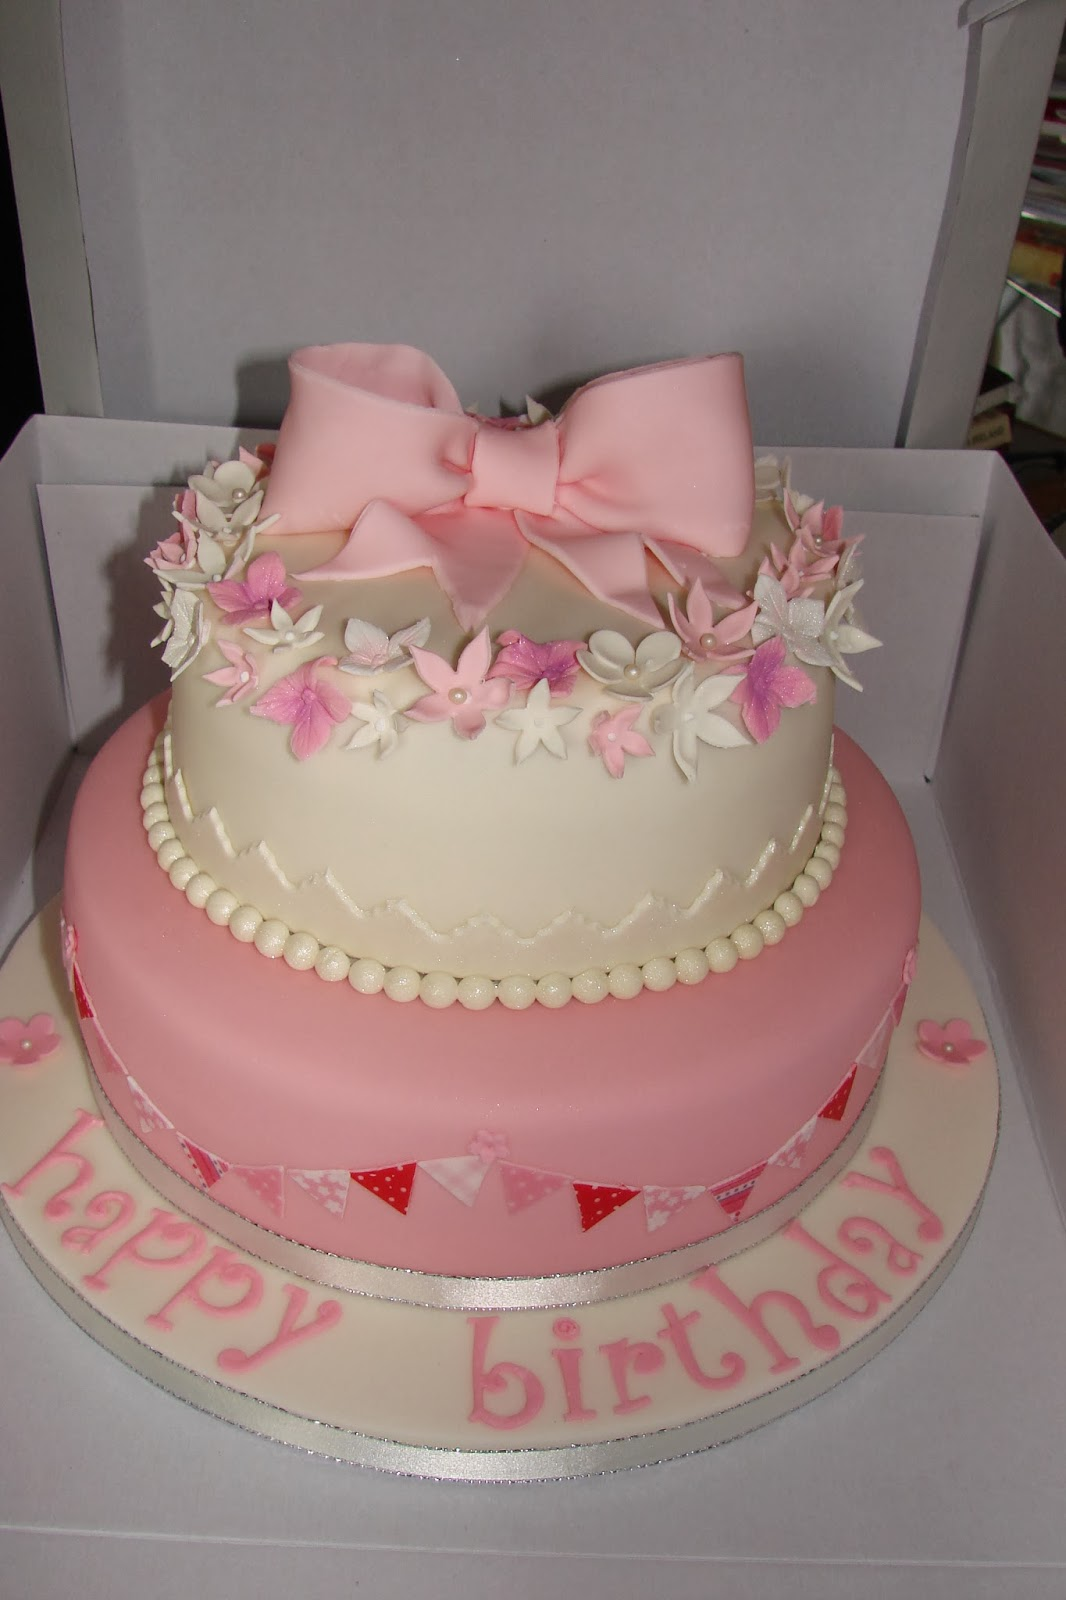 Sweet and Fancy: 70th birthday cake